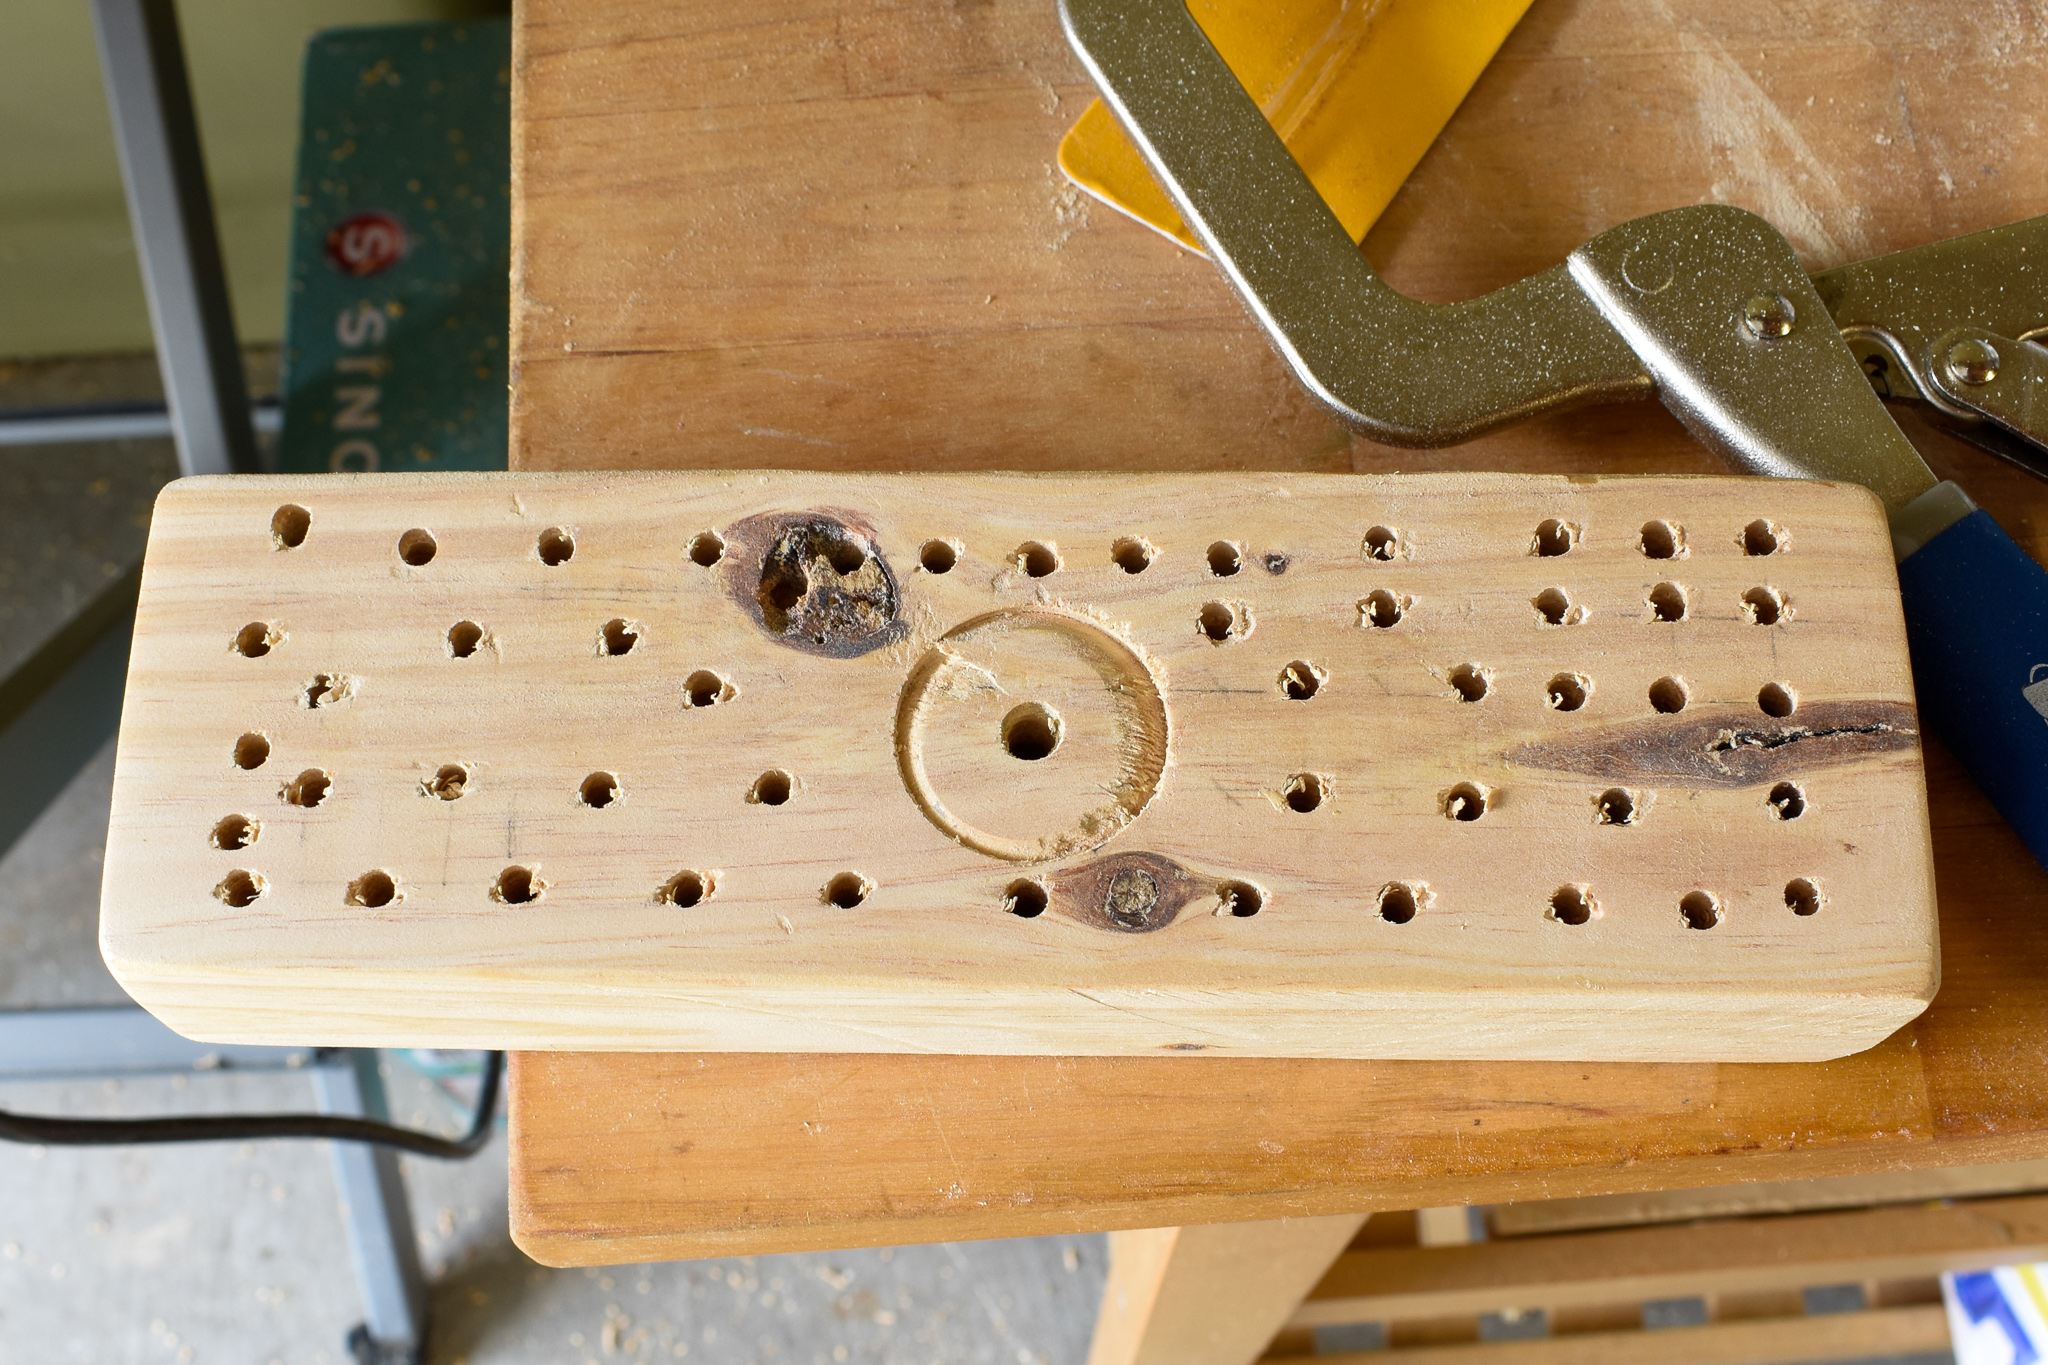 "DIY BROOM TUTORIAL: STEP SEVEN: Using the 3/8"" drill bit, create approximately 3/8"" deep holes along your grid pattern. This is where your bristles will attach to the underside of your broom. Alternate the spacing for a fuller bristle look."